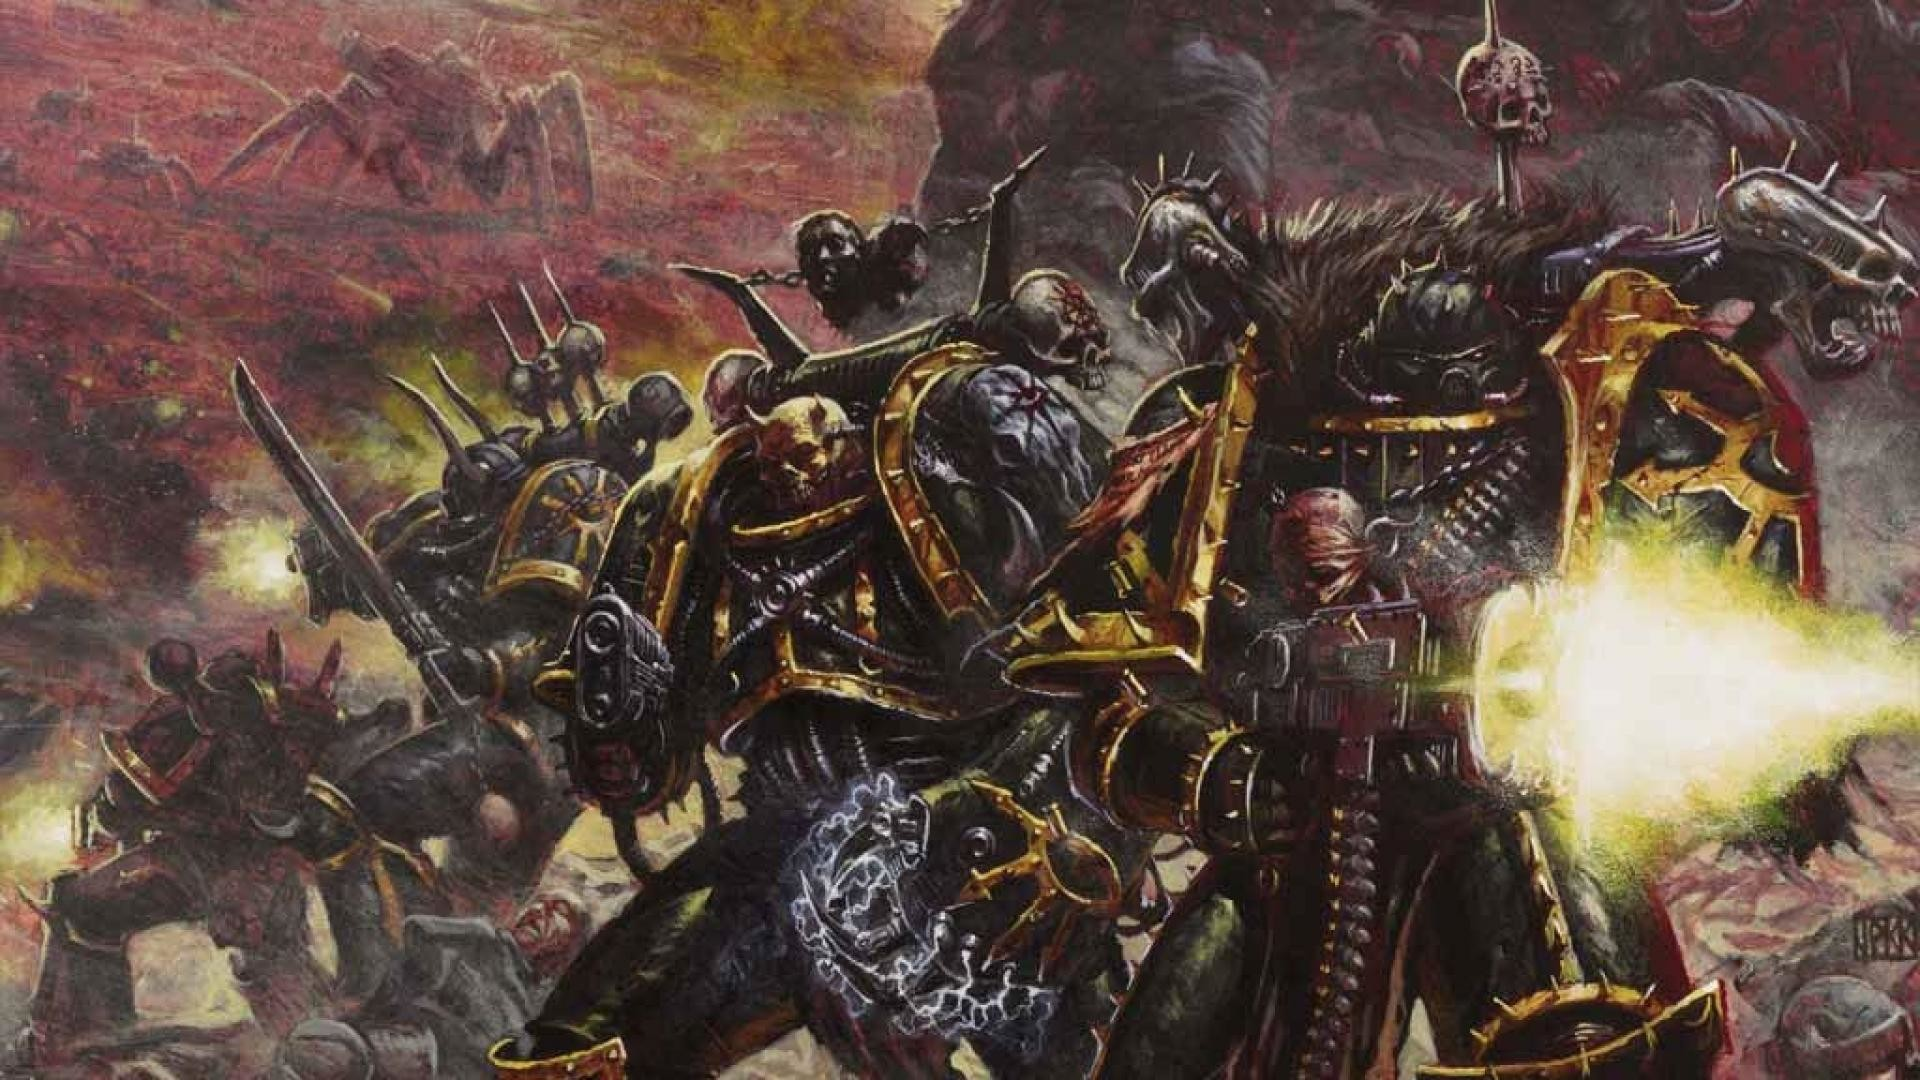 1920x1080 50 Images That Show Us The Legacy of Chaos Space Marines | GAMERS DECIDE